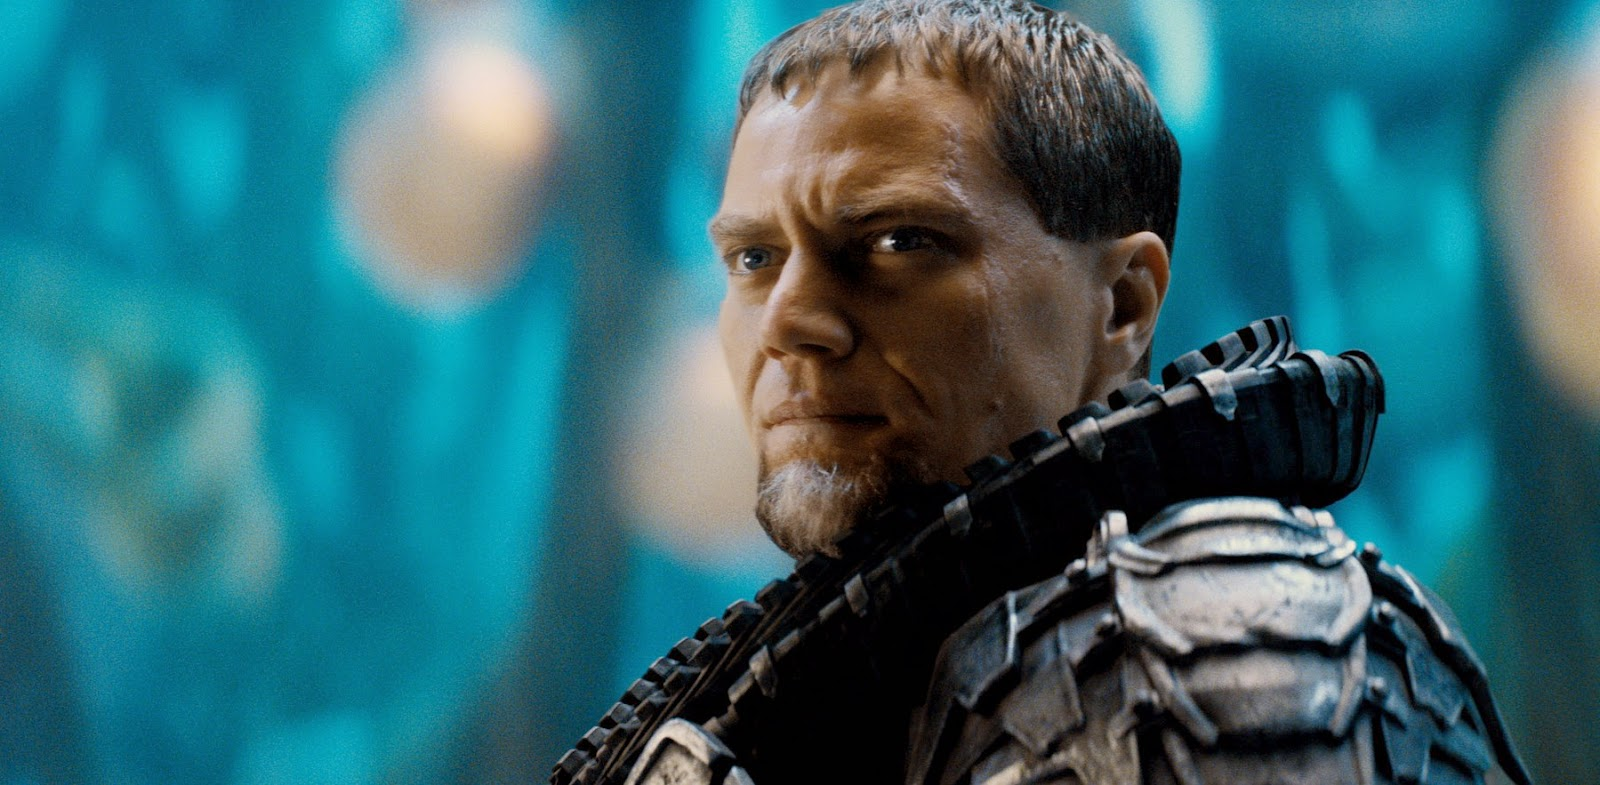 Cadáver do General Zod pode ser elemento fundamental na trama de Batman v Superman: Dawn of Justice